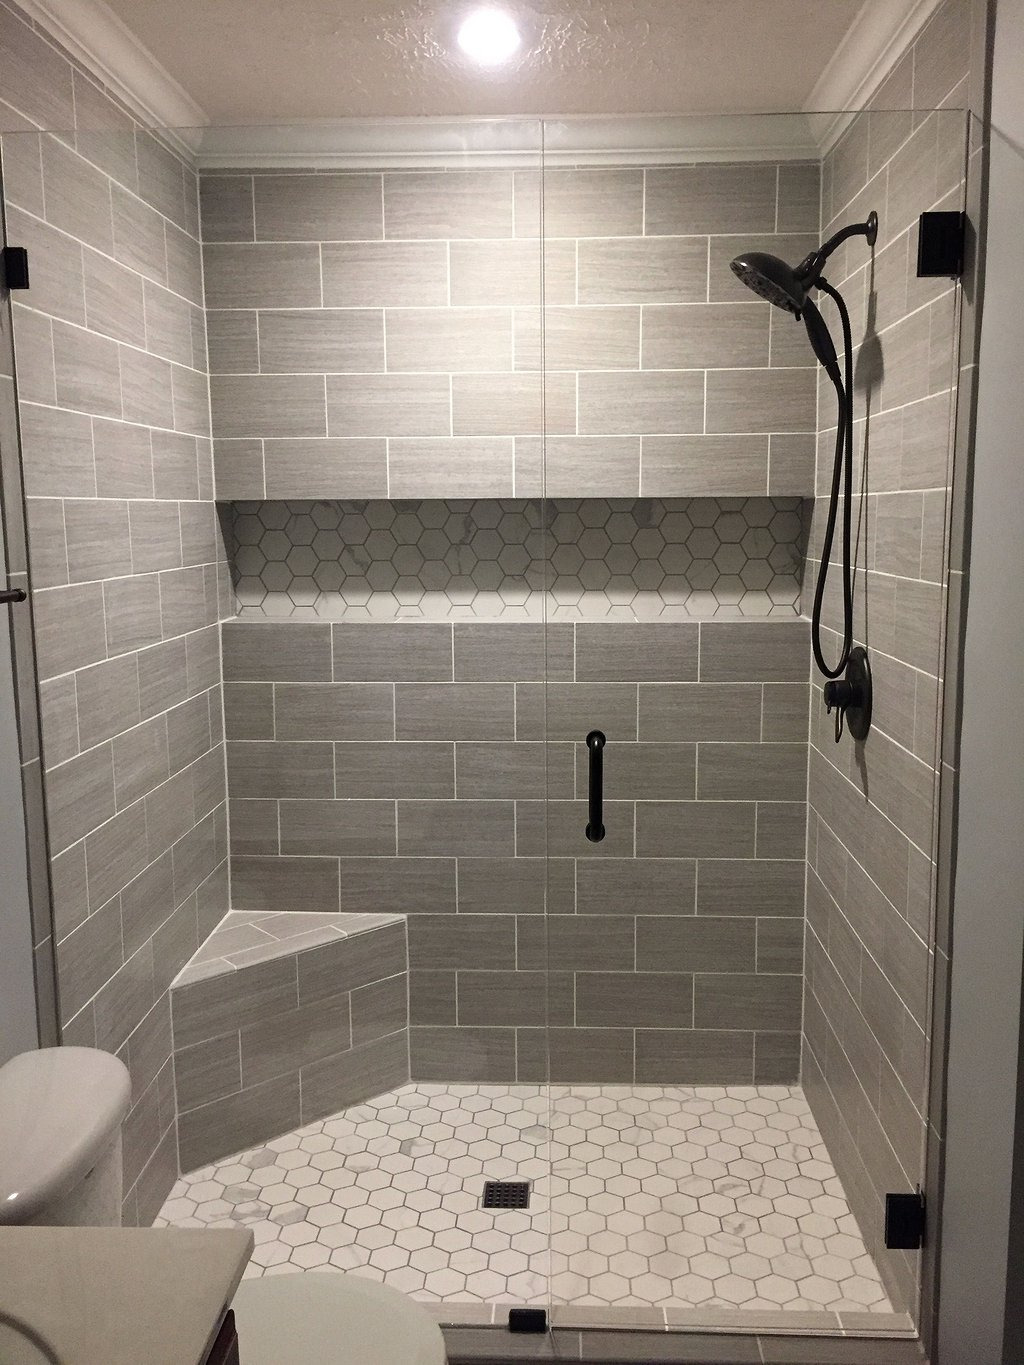 Pictures Of Bathrooms with Walk In Showers Luxury Master Bathroom Walk In Shower Ideas